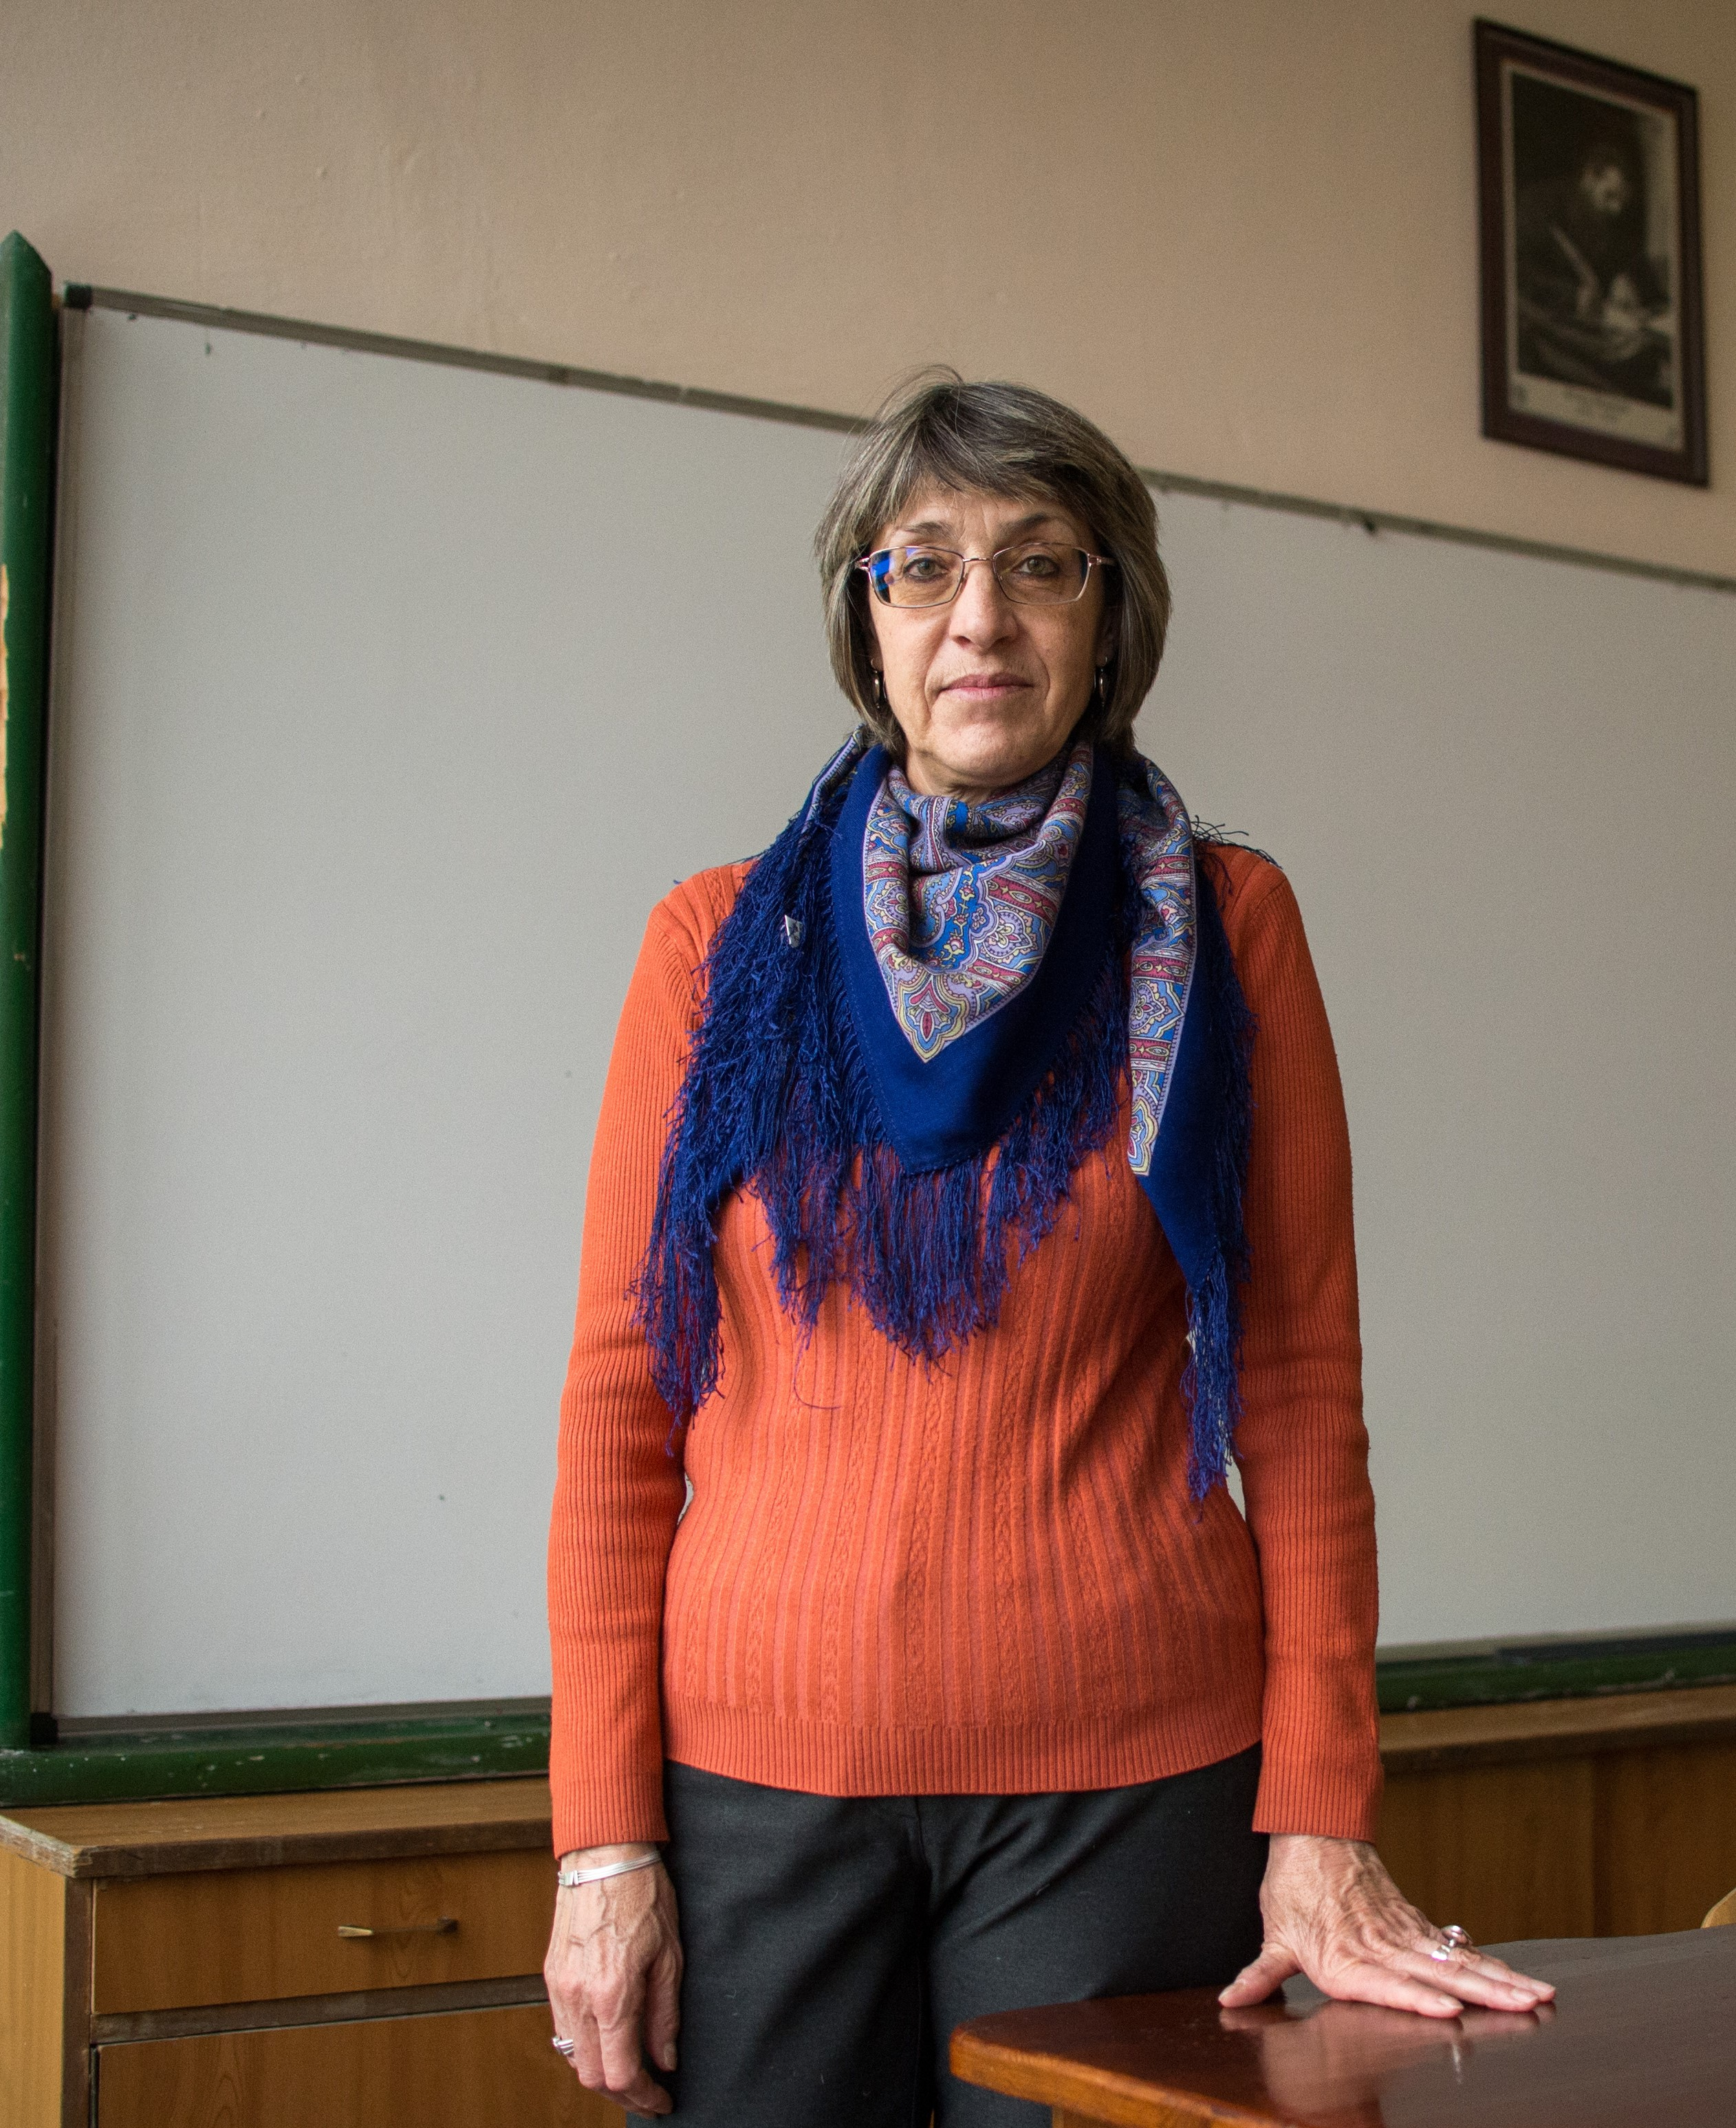 """Katya Brankova, teacher, posses for a photo in her classroom at the Secondary school """"Brothers Peter and Ivan Kanazirevi"""" in the town of Razlog on December 4, 2020. NIKOLAY DOYCHINOV for AufRuhr"""